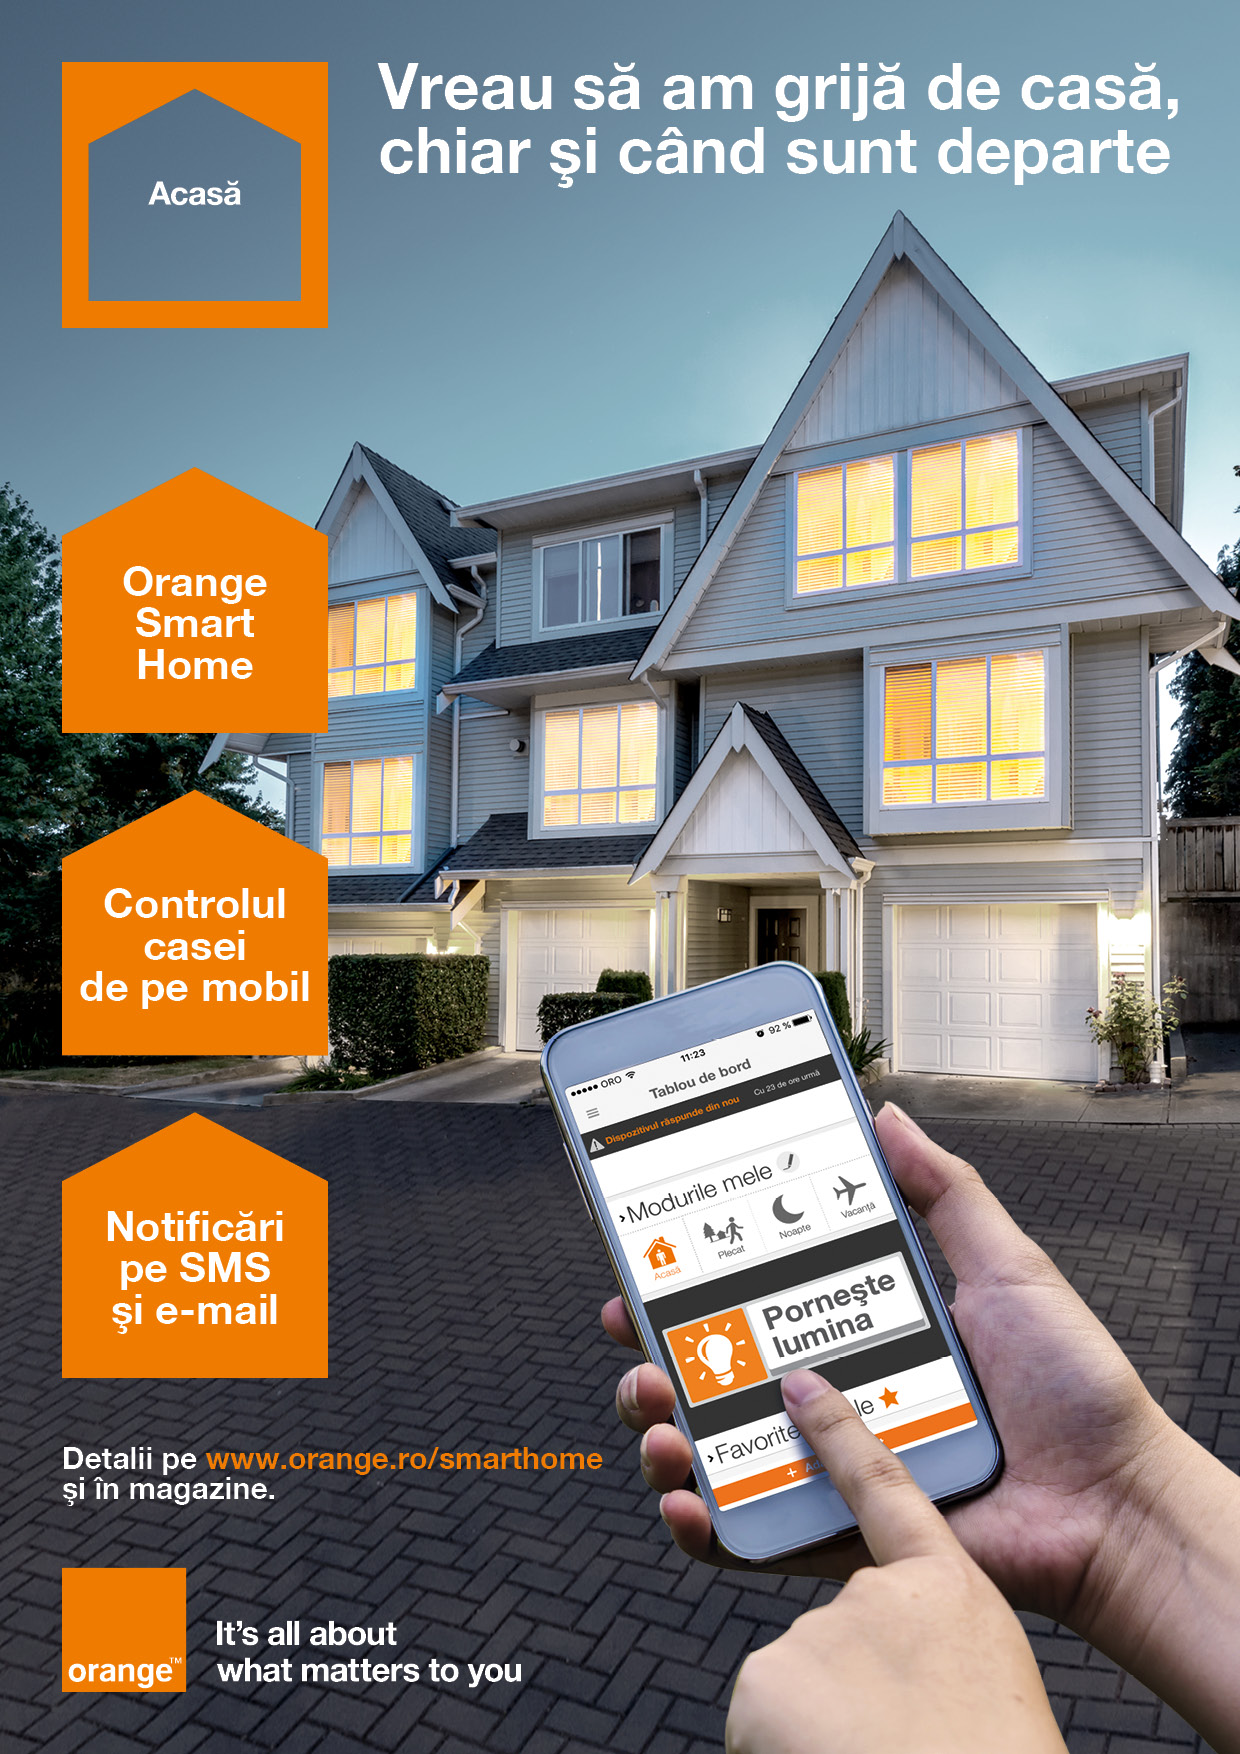 Casele pot fi mai inteligente cu Orange Smart Home